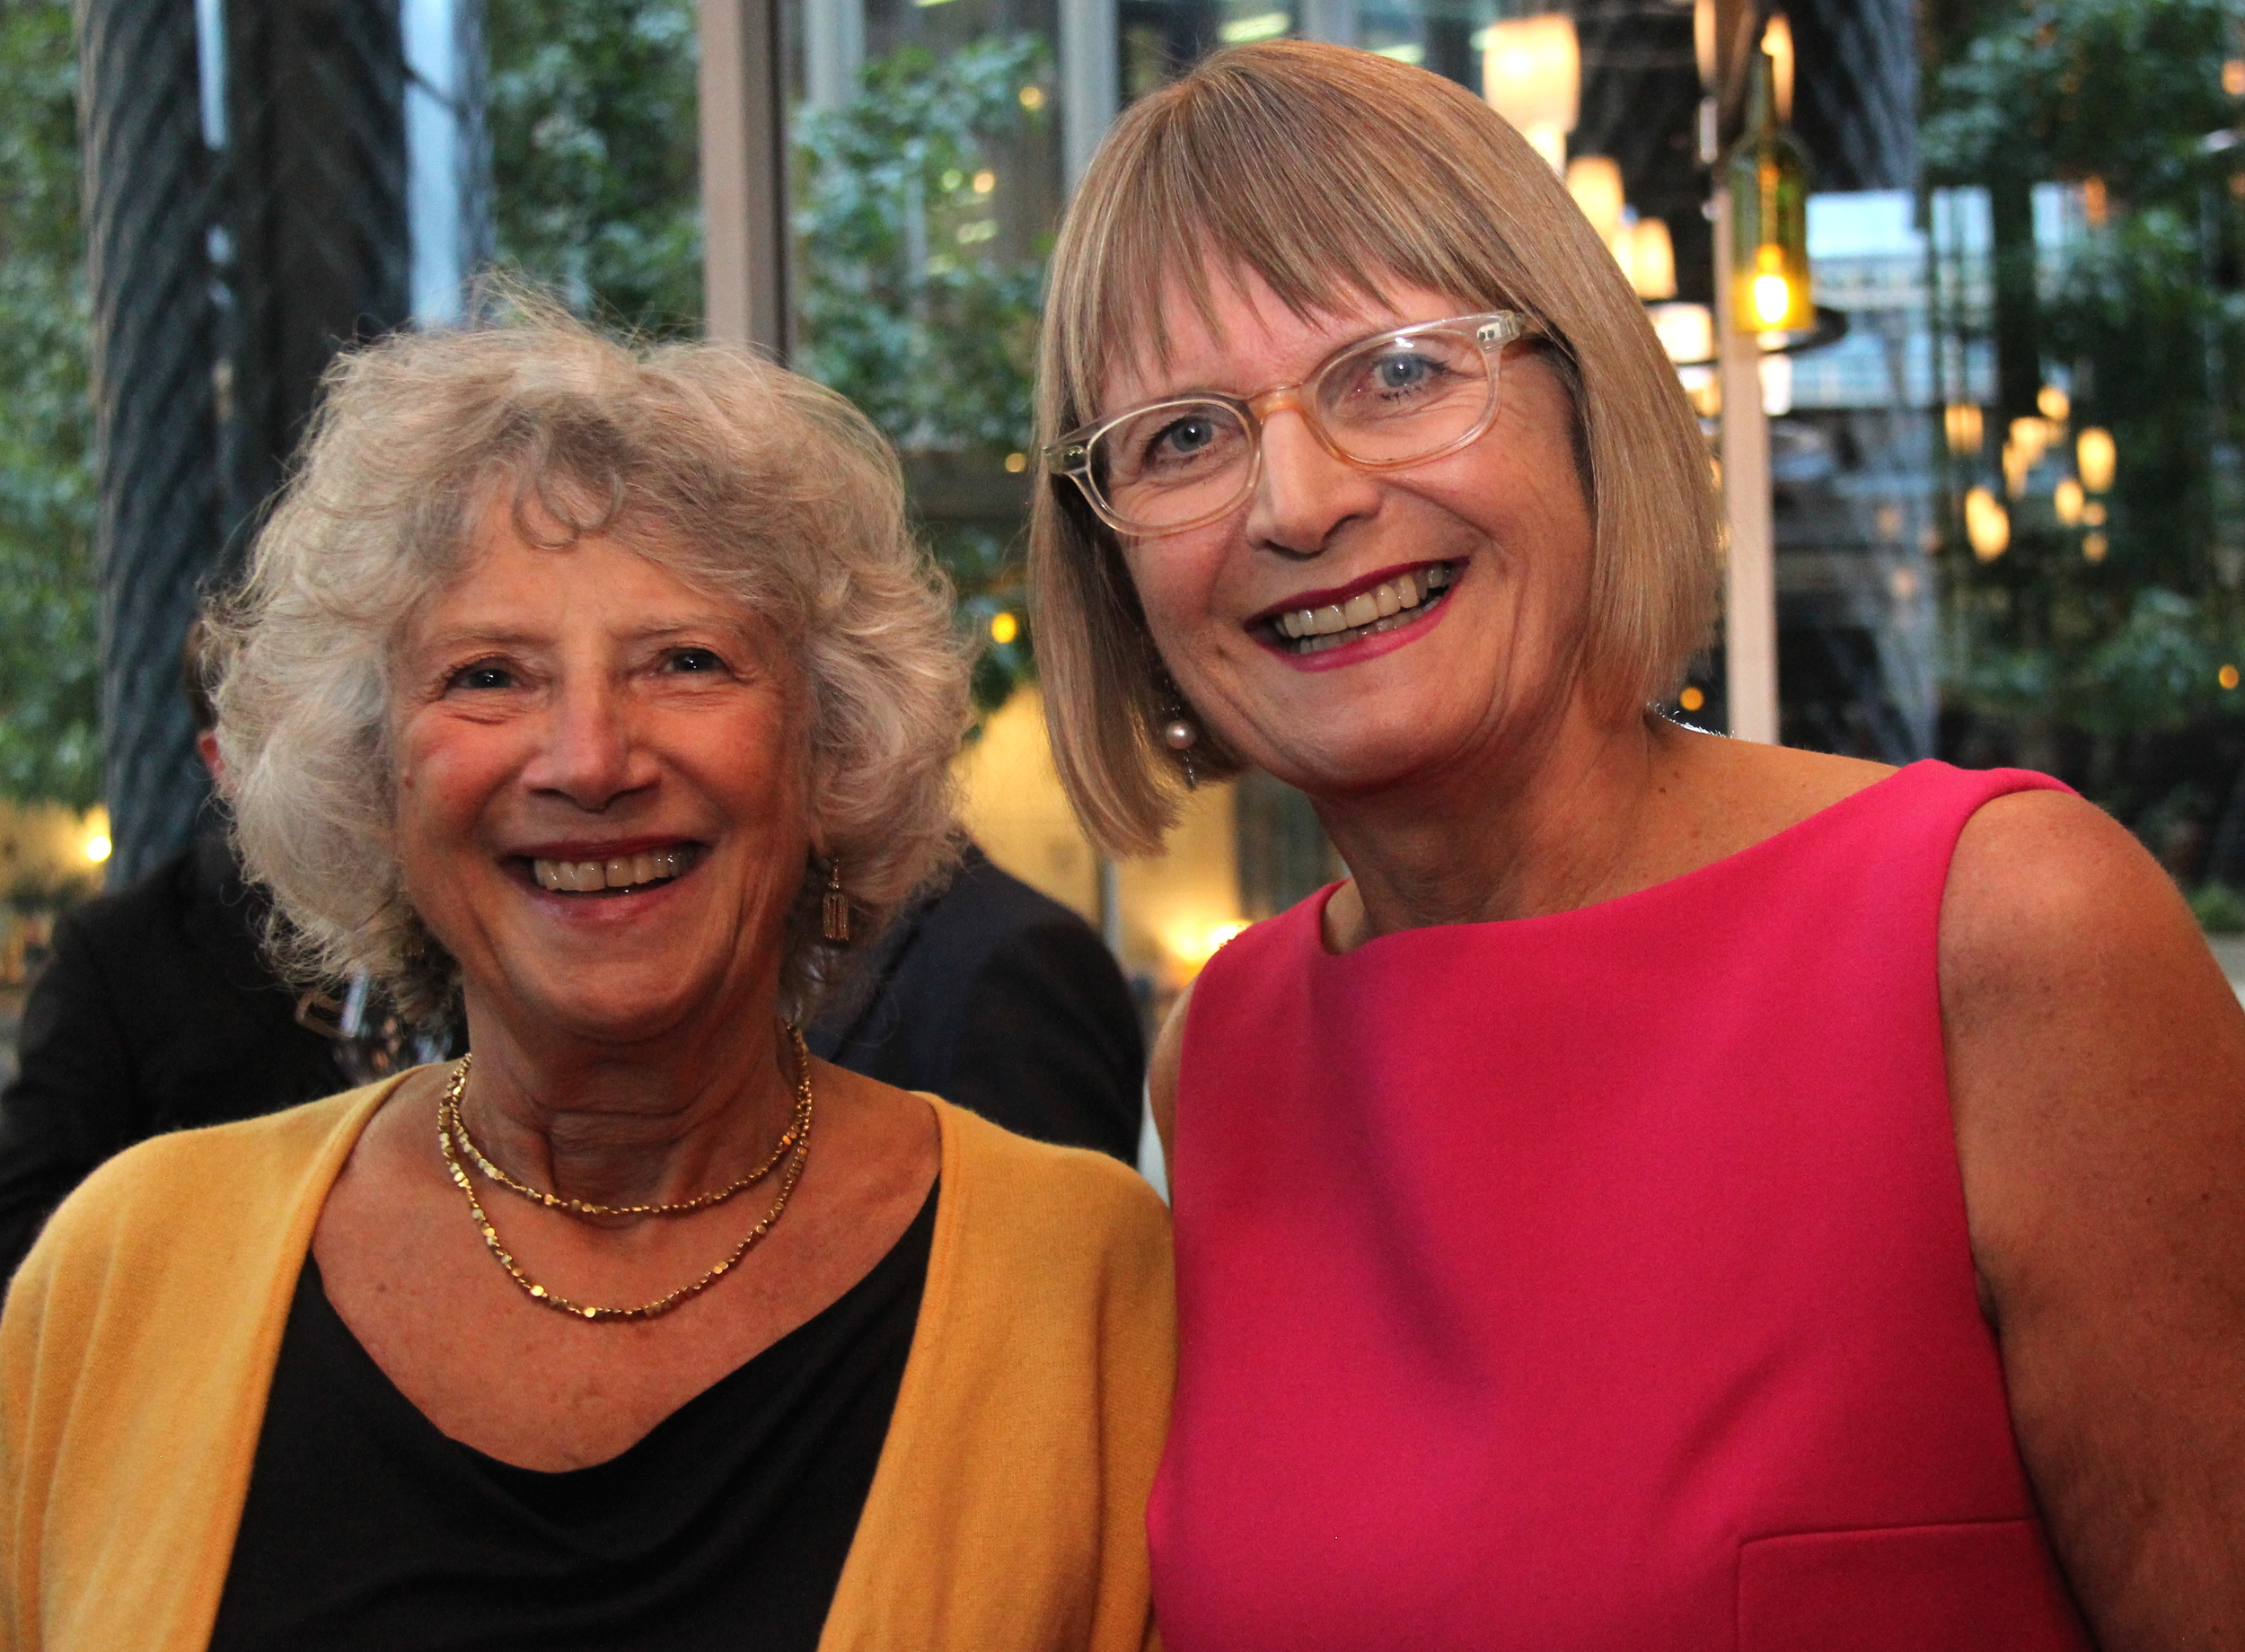 Carmen Calill, founder of Virago, and Jancis